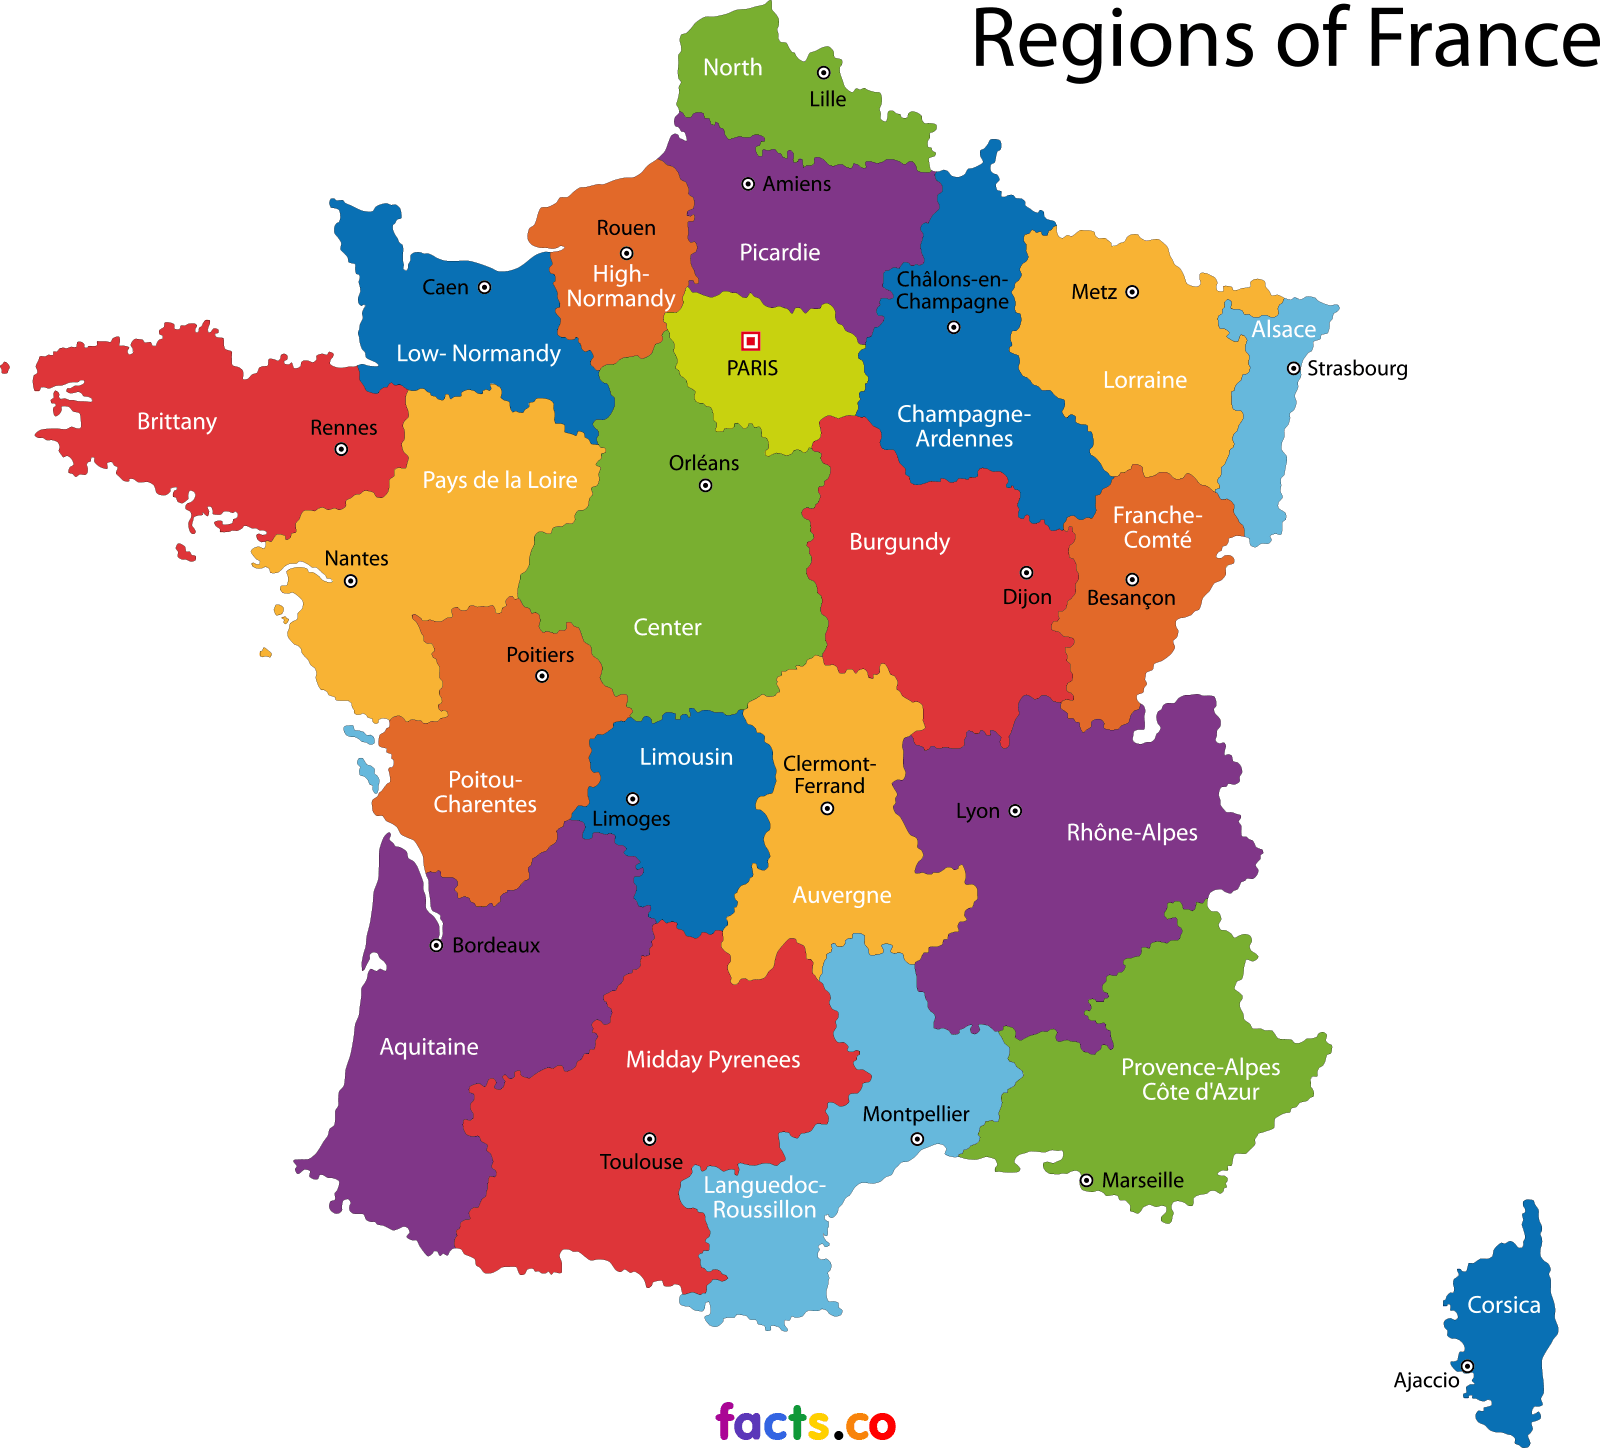 Map Of France With States.Top 10 Punto Medio Noticias France Map With All States